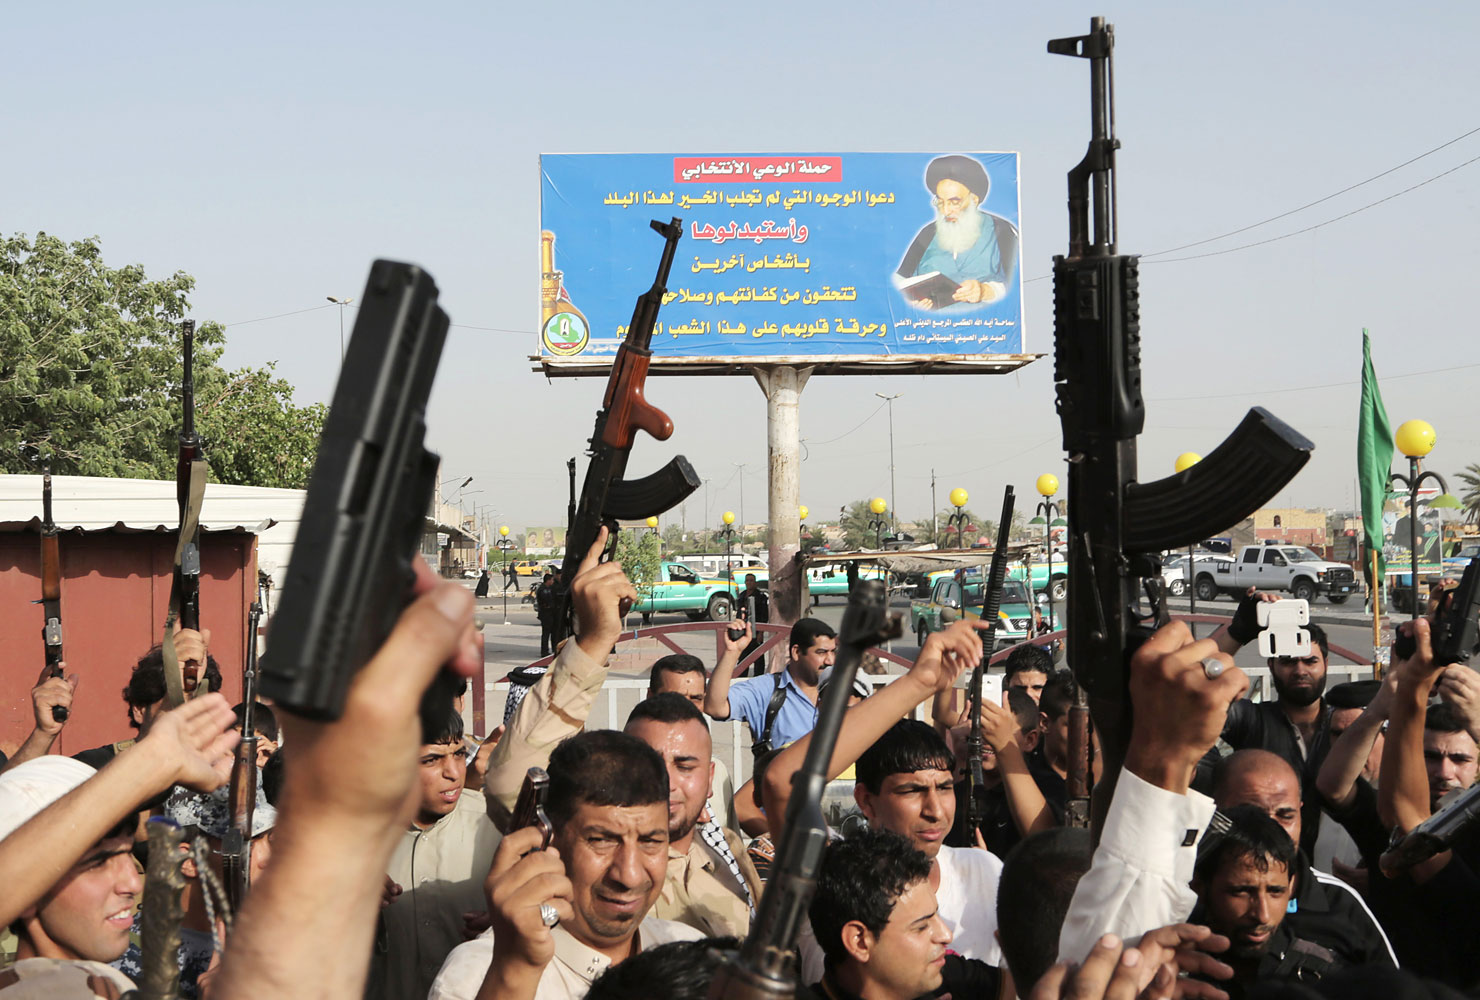 Iraqi Shiite tribal fighters raise their weapons and chant slogans against the al-Qaida-inspired Islamic State of Iraq and the Levant below a portrait of Ayatollah Ali al-Sistani, in Baghdad's Sadr City, Iraq, June 18, 2014. On Friday, Grand Ayatollah Ali al-Sistani, Iraq's top Shiite cleric, called for a new effective government in Iraq.